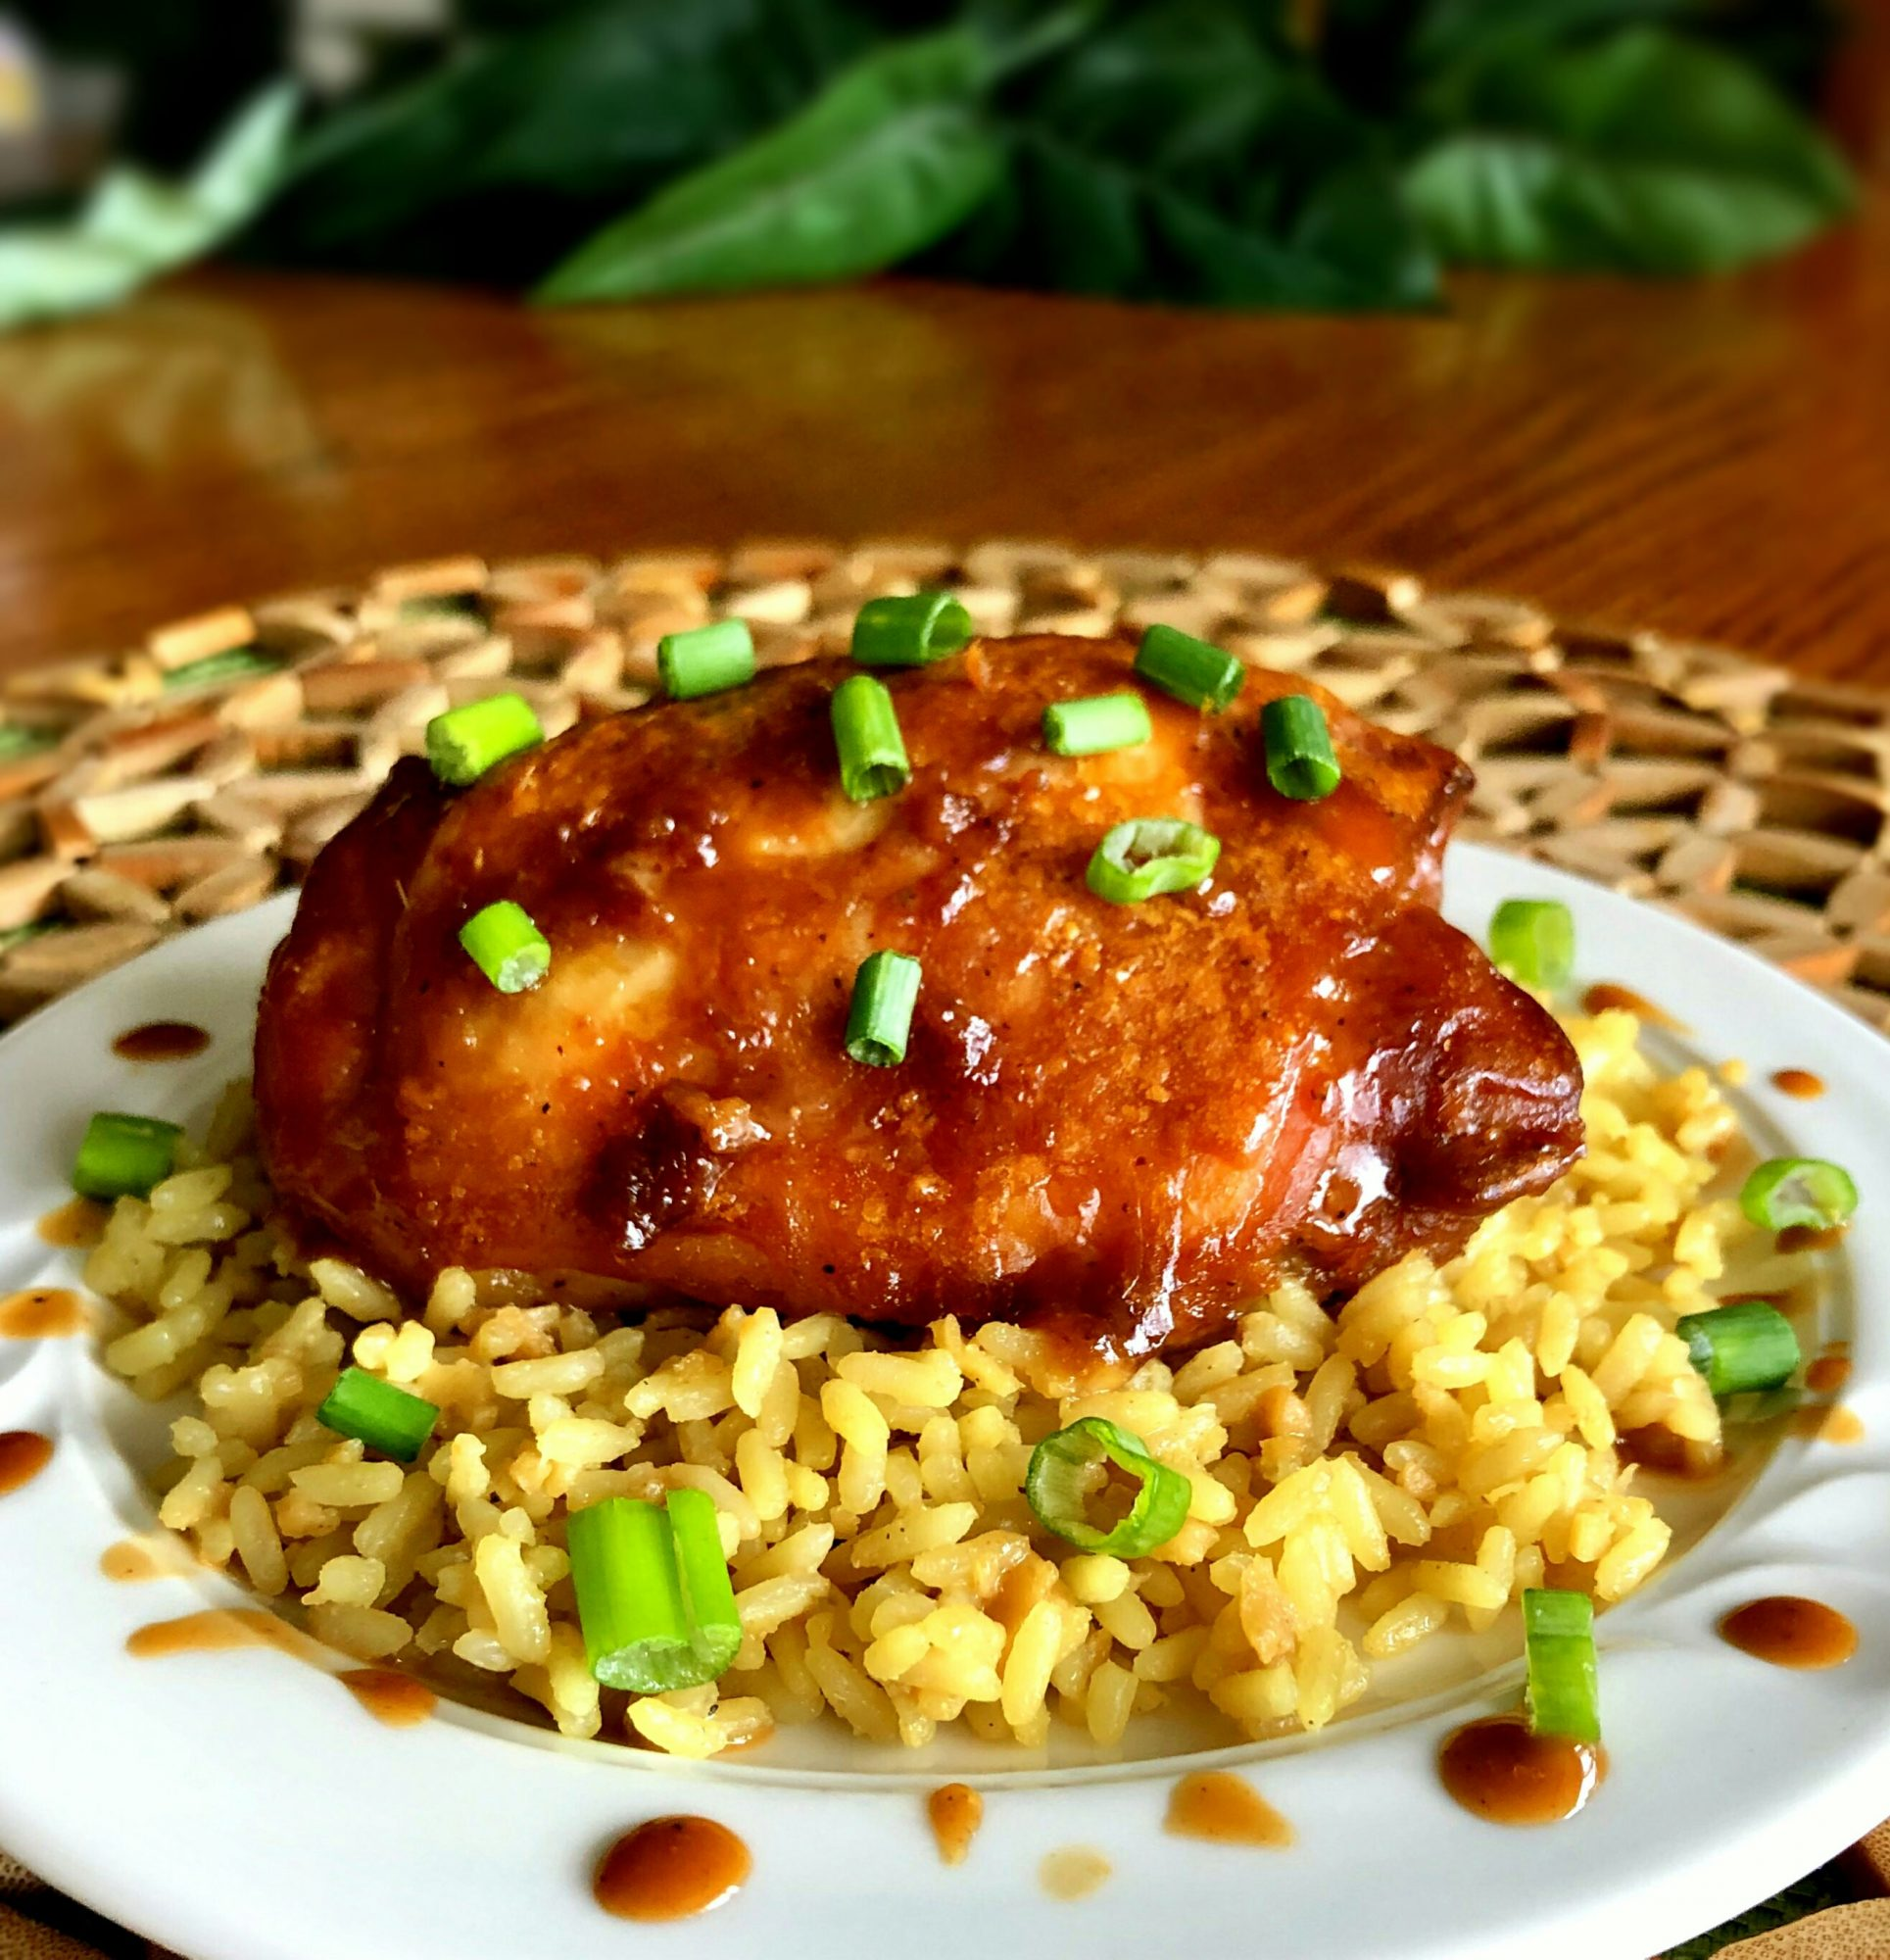 glazed chicken thigh over rice with green onions